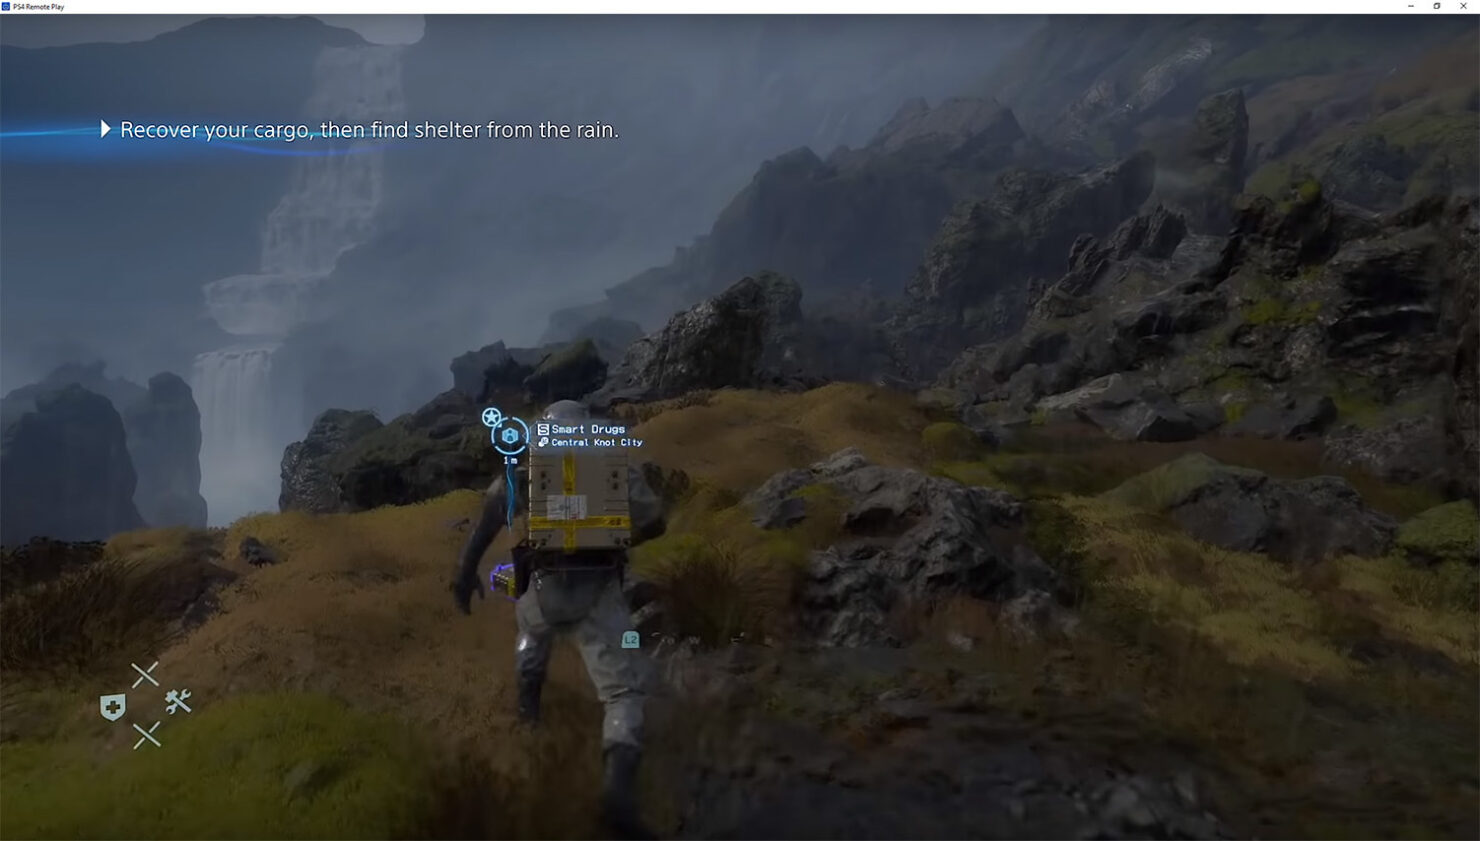 death-stranding-for-pc-with-ps4-remote-play-screenshot-3